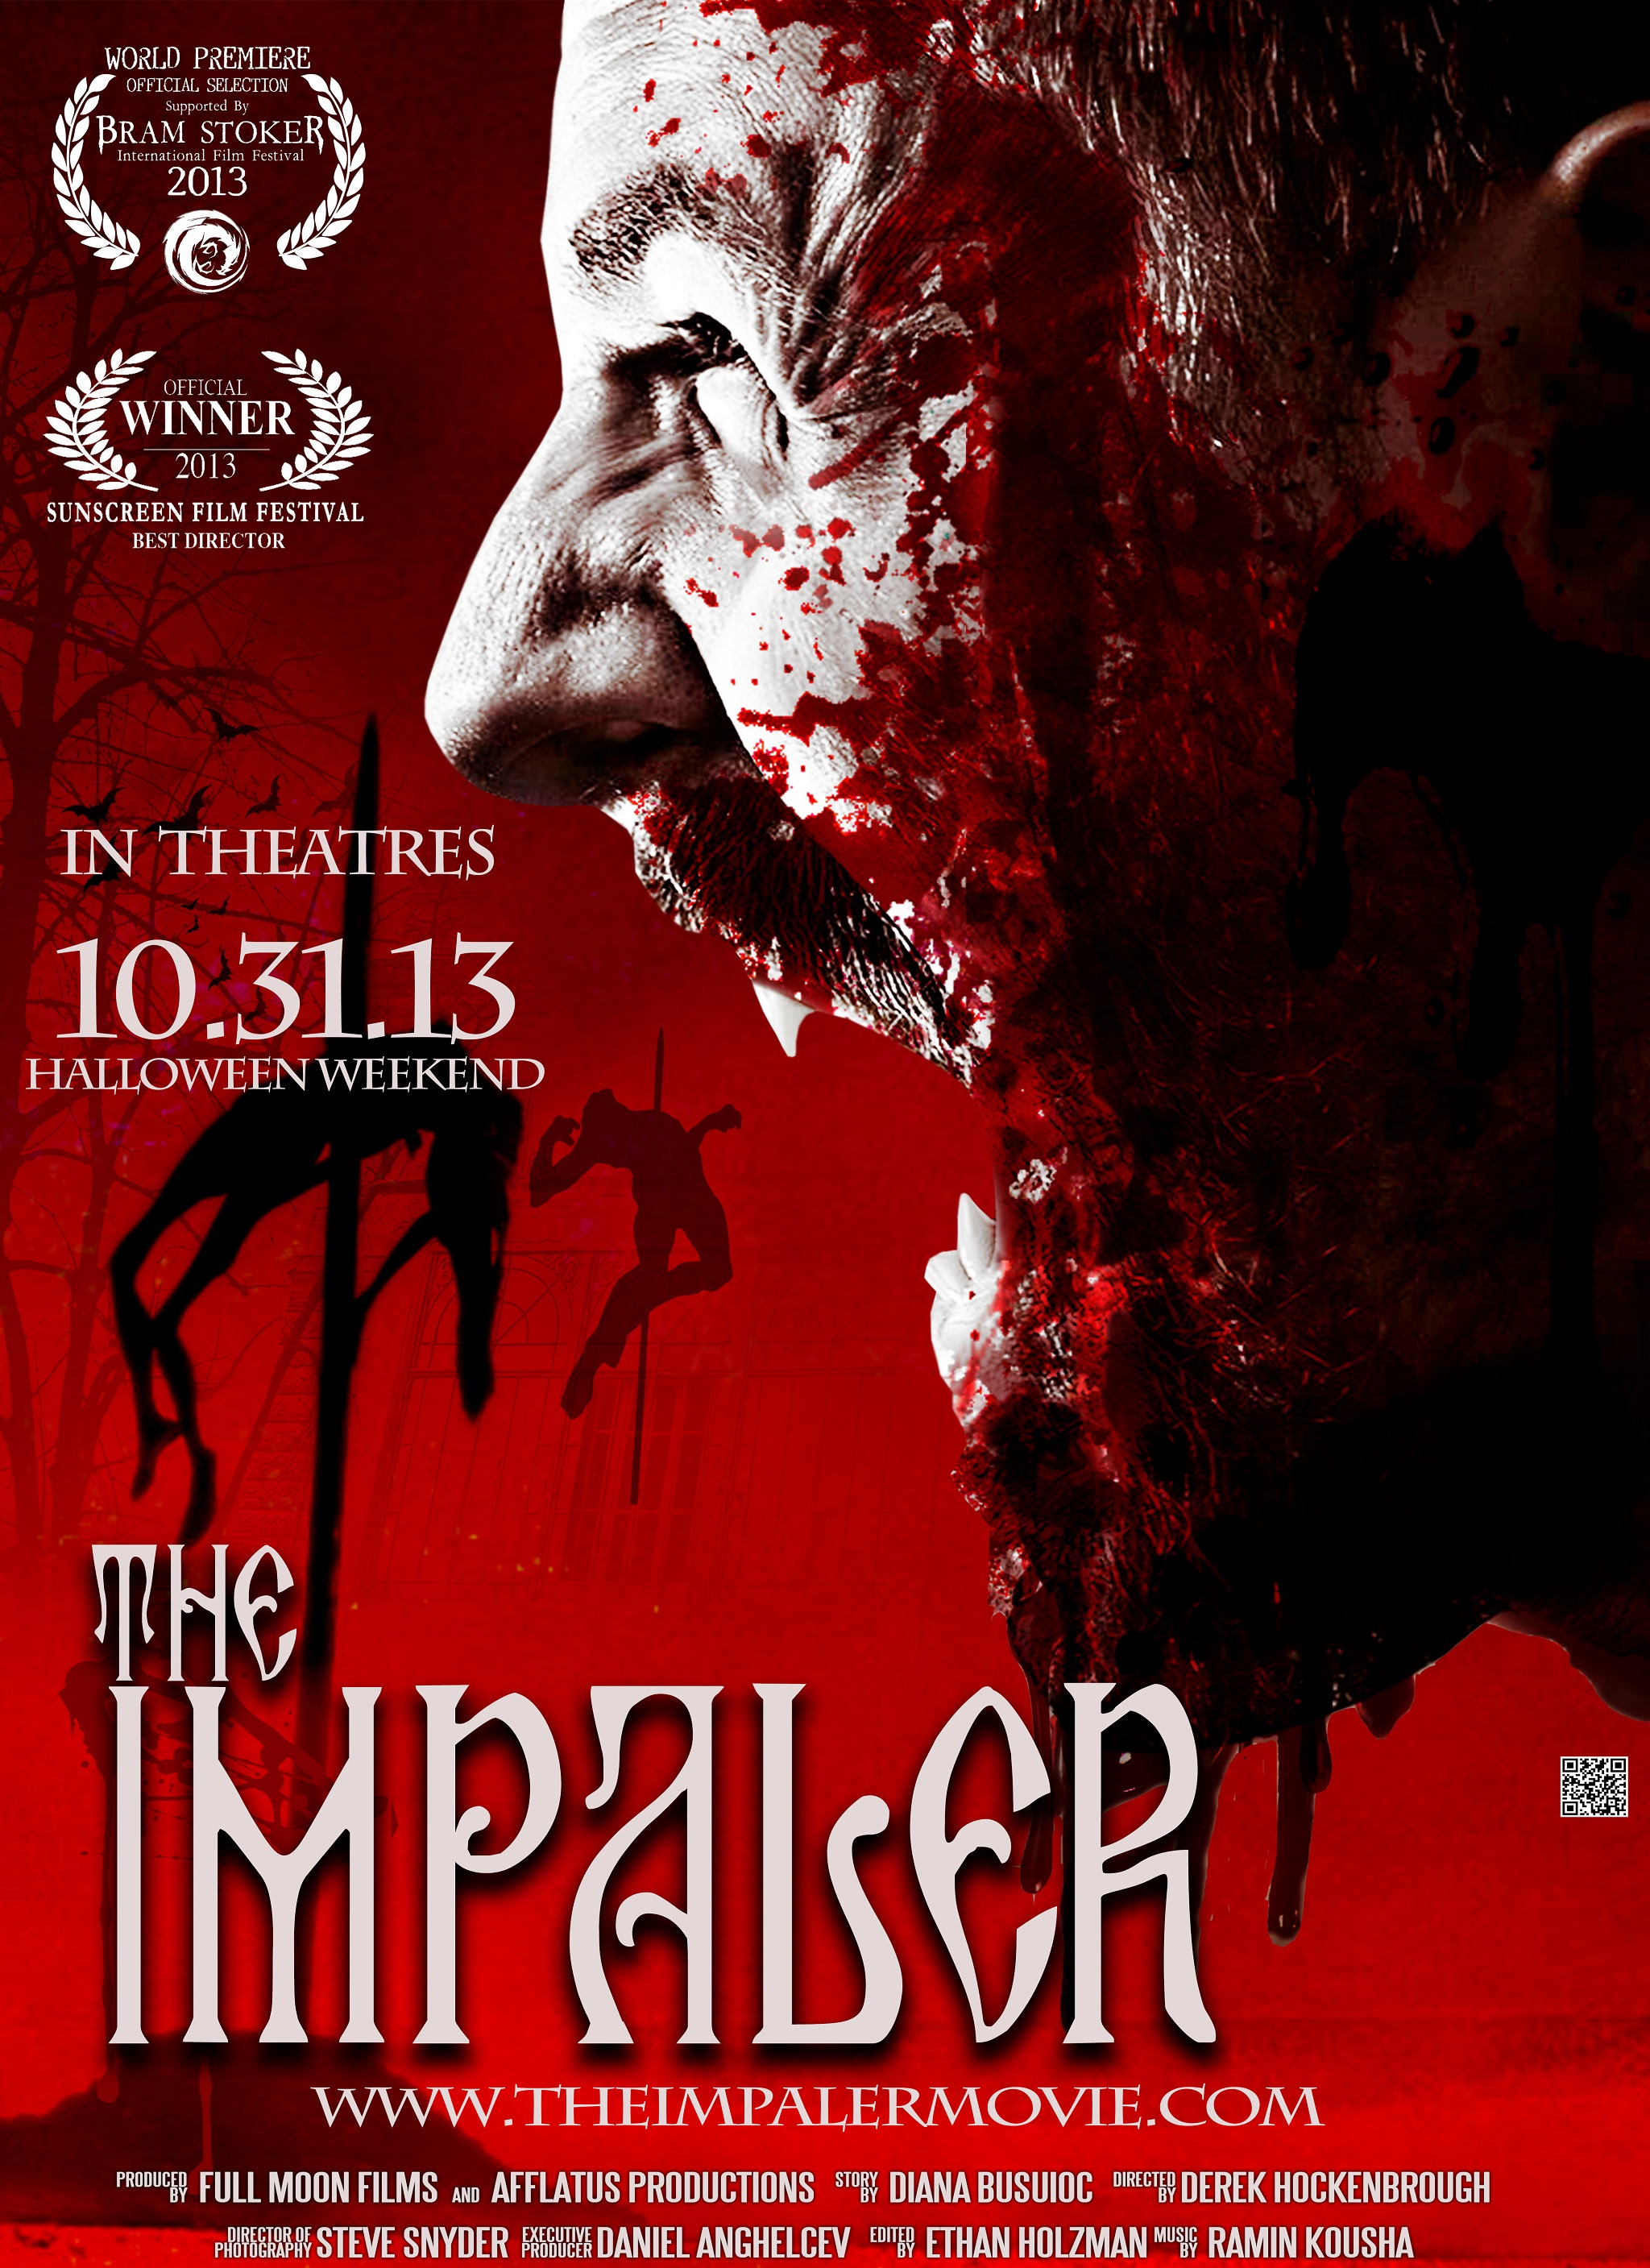 The Impaler Trailer - with Laurels